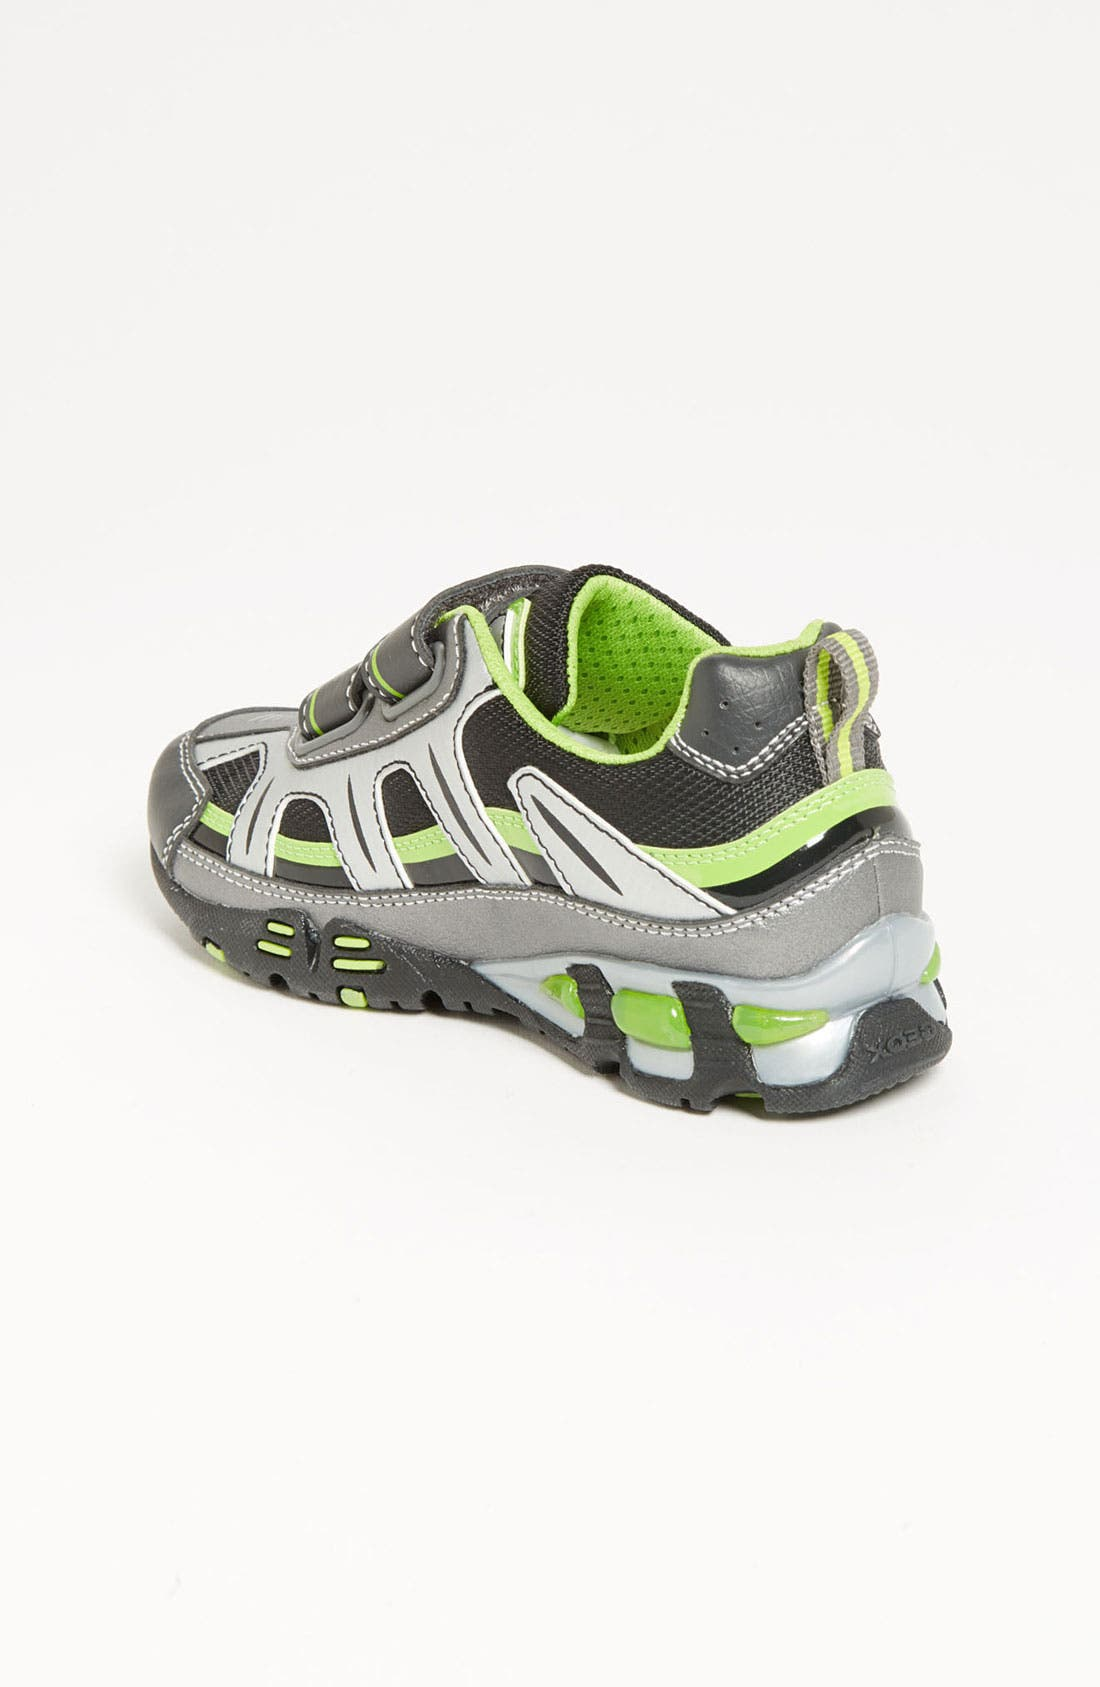 Alternate Image 2  - Geox 'Light Eclipse 14' Light-Up Sneaker (Toddler, Little Kid & Big Kid)